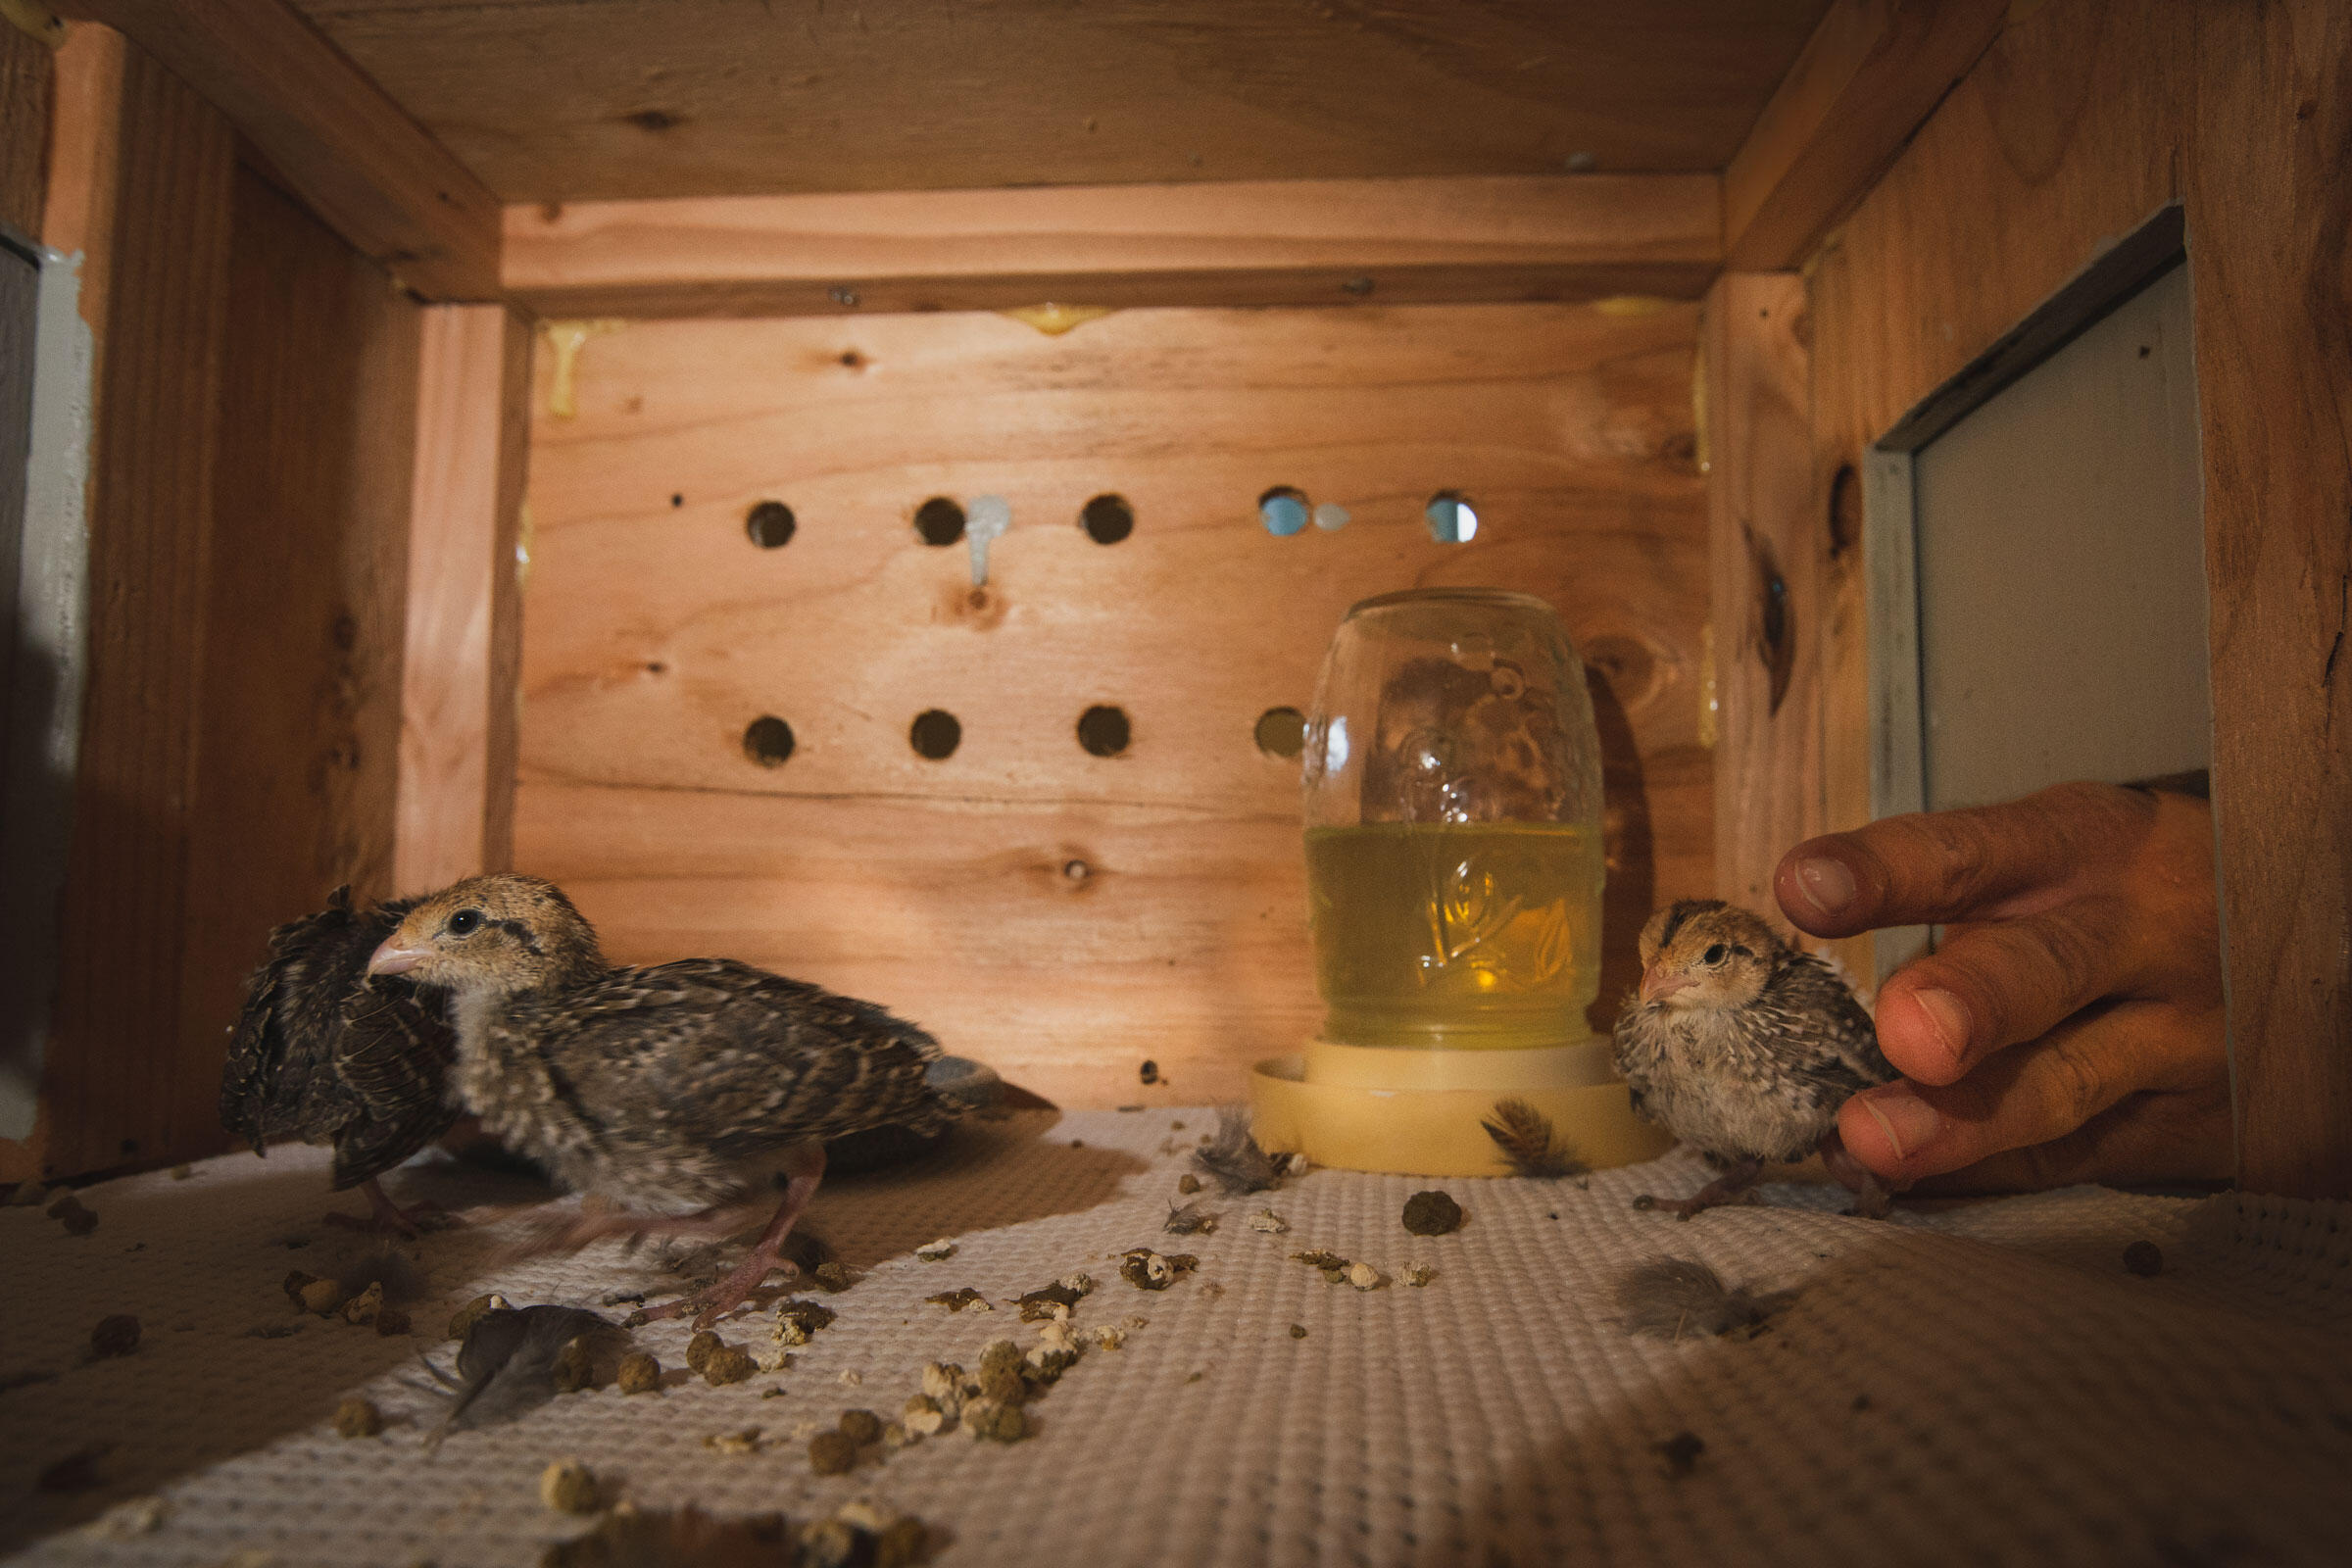 Masked Bobwhite chicks, having just arrived by plane from Oklahoma a few hours before, are placed into their brood box. Morgan Heim